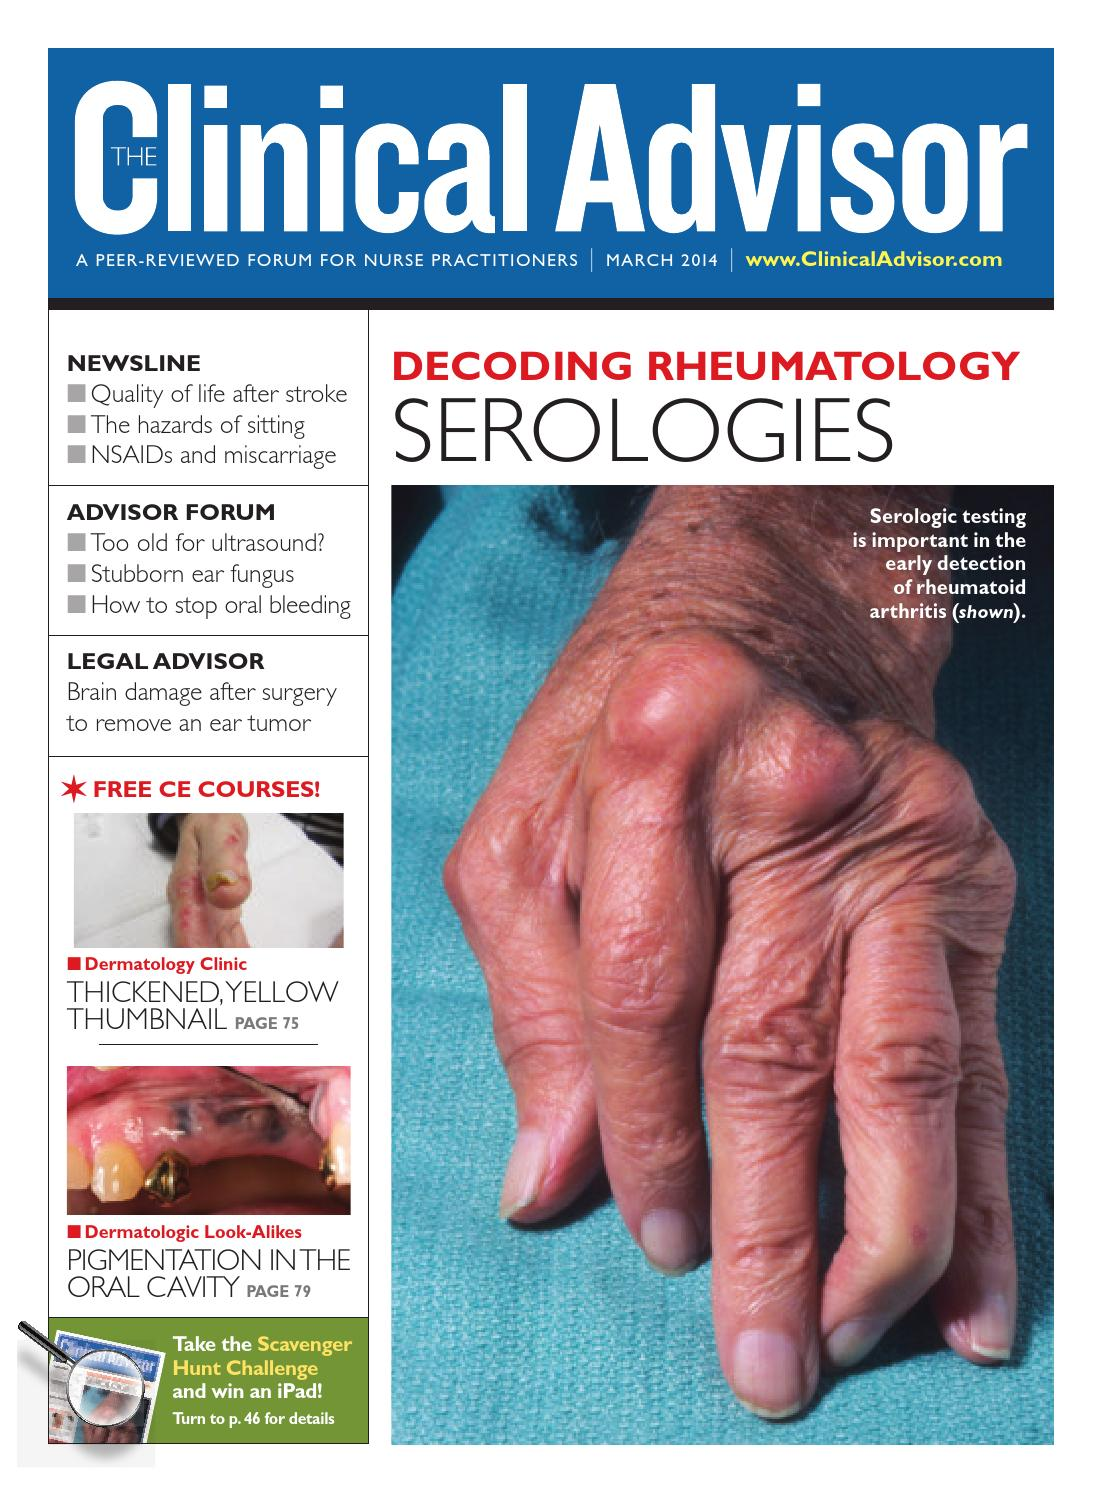 March 2014 Clinical Advisor by The Clinical Advisor , issuu